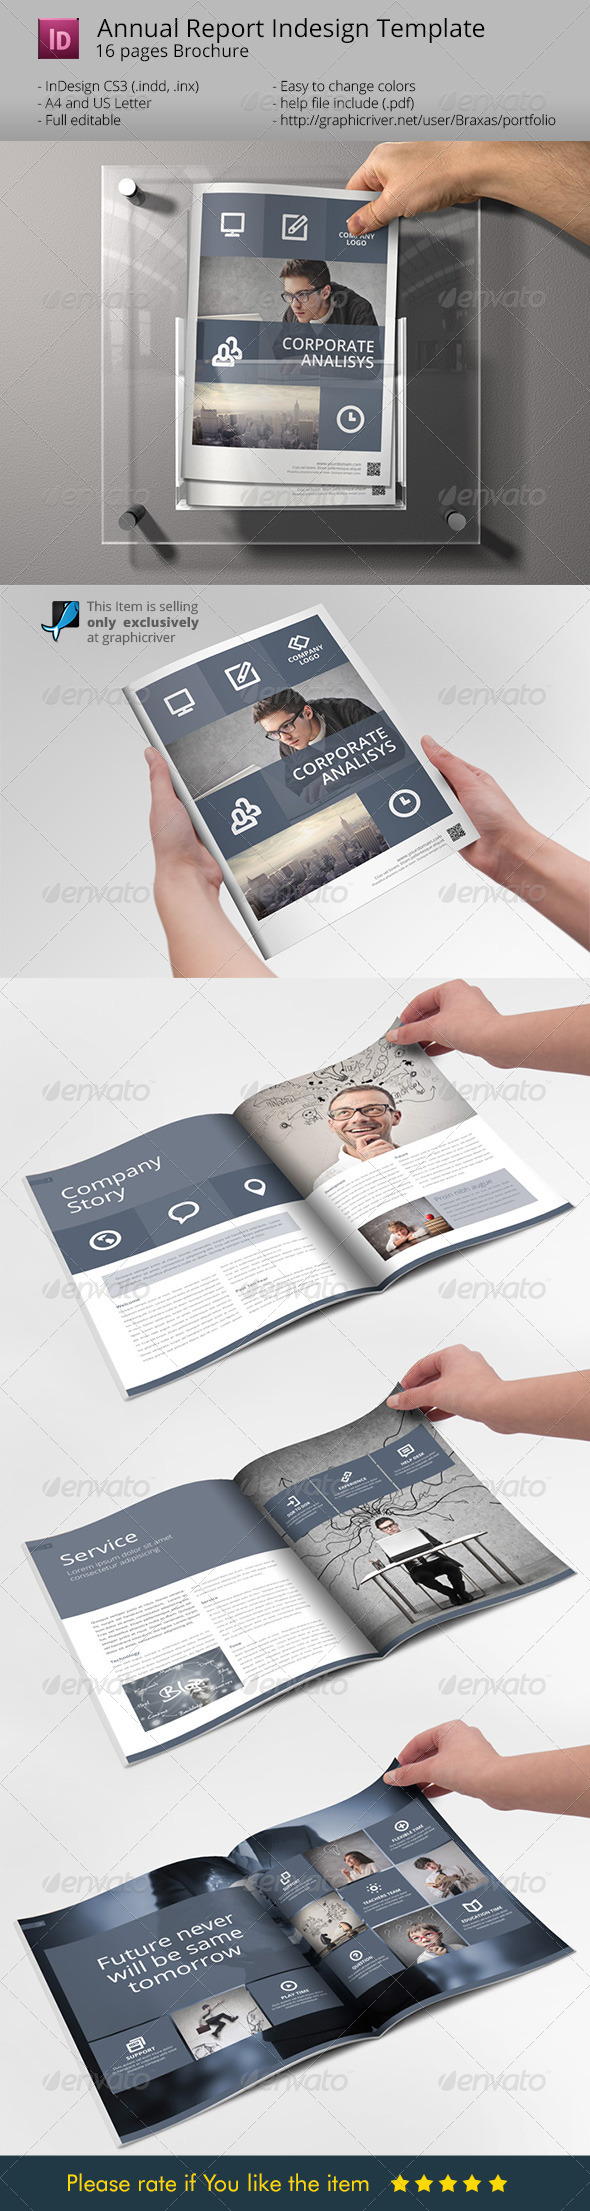 System Indesign Brochure Template - Sharp & Clean - Corporate Brochures